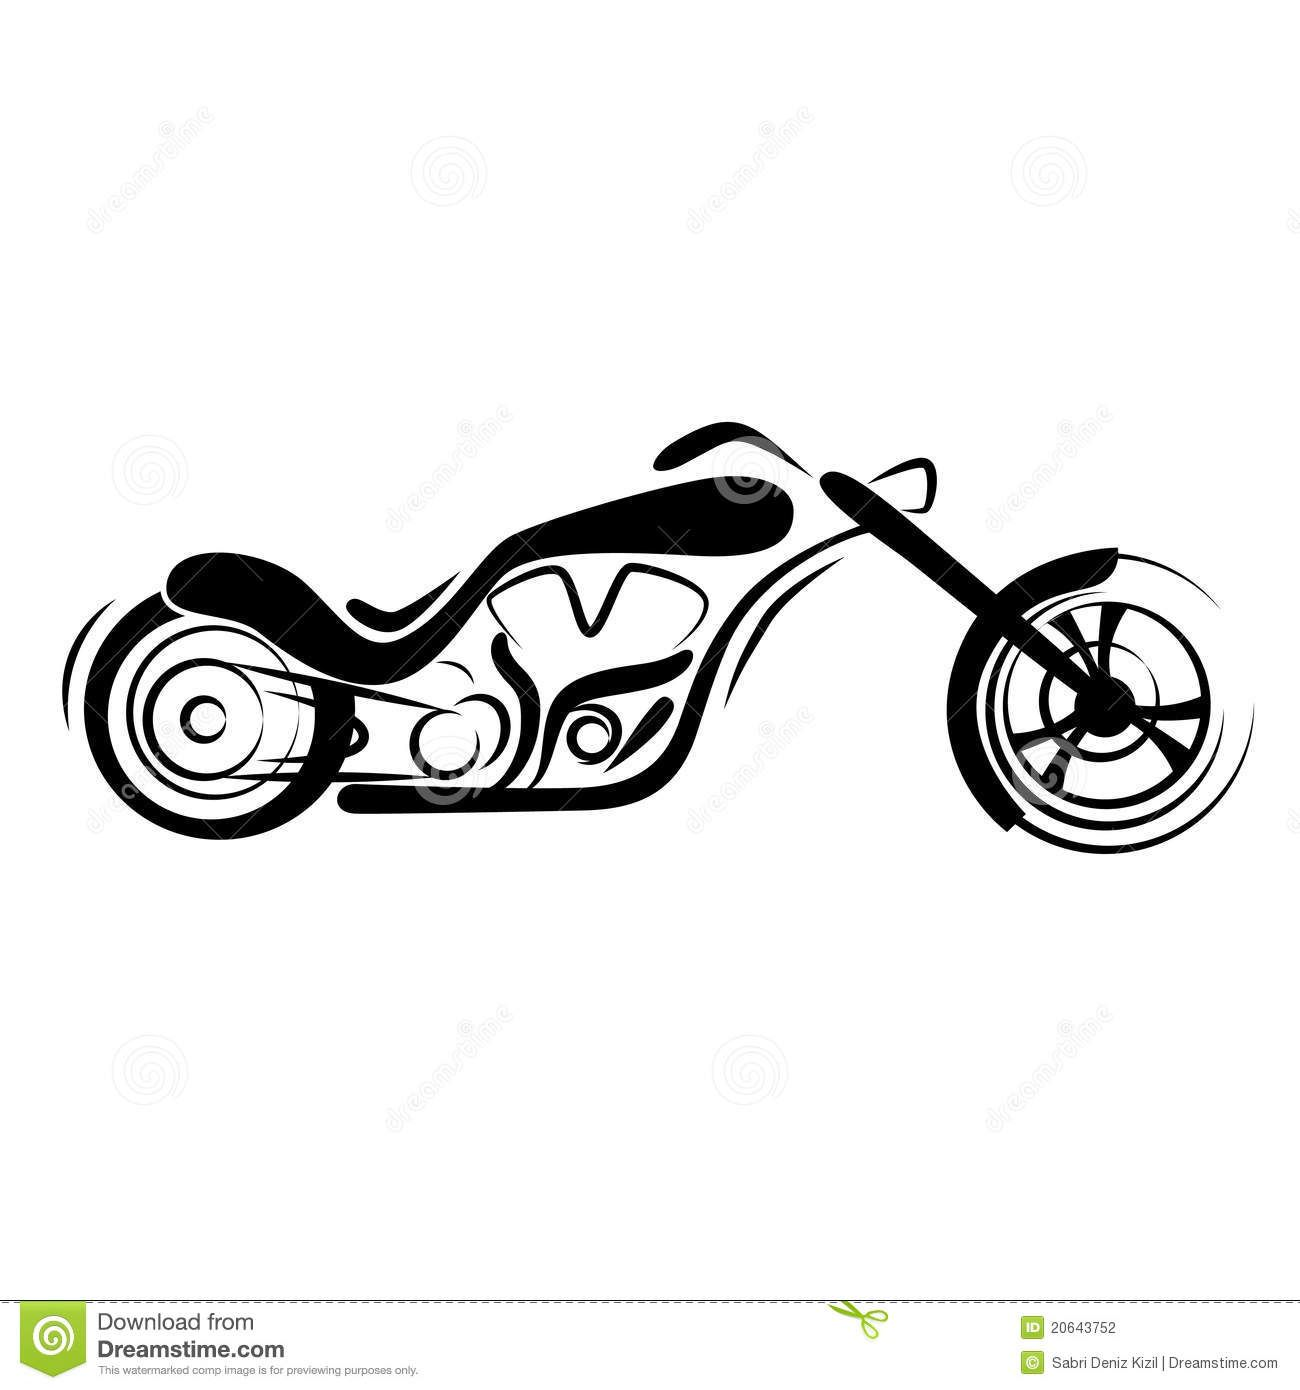 Motorcycle clip art with flames - Simple Motorcycle Clipart Google Search